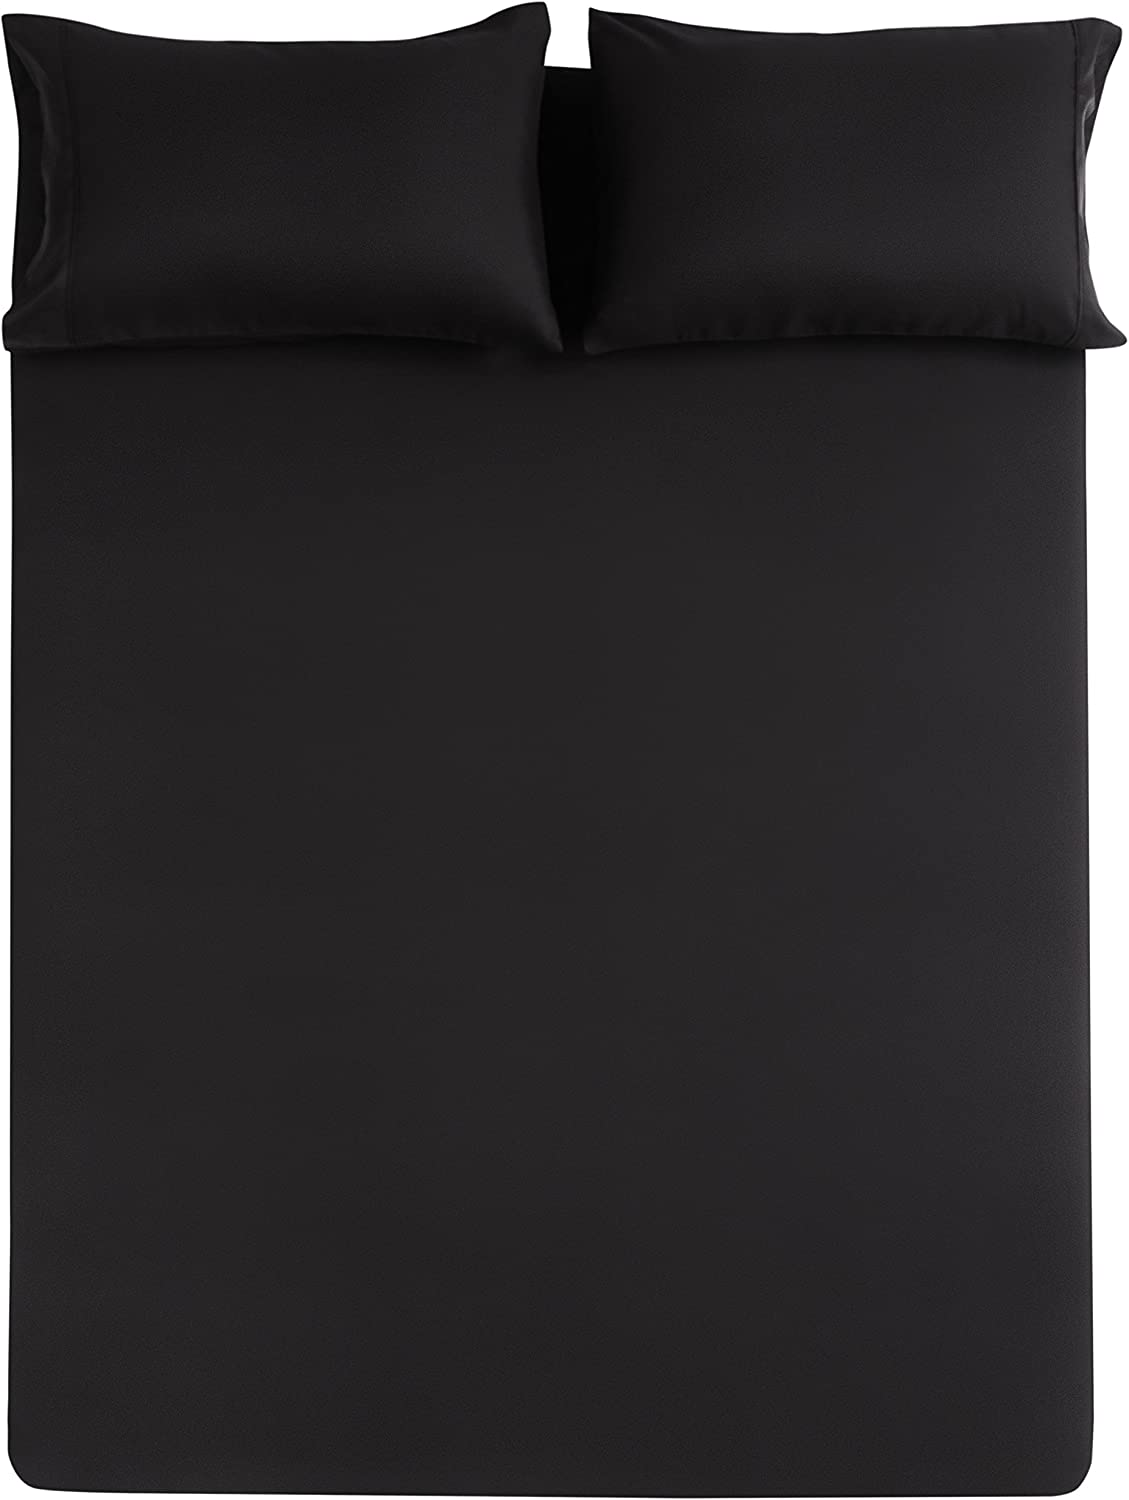 Mohap Bed Sheet Set Twin Black 3 Pieces Brushed Microfiber Luxury Soft Bedding Fade Resistant